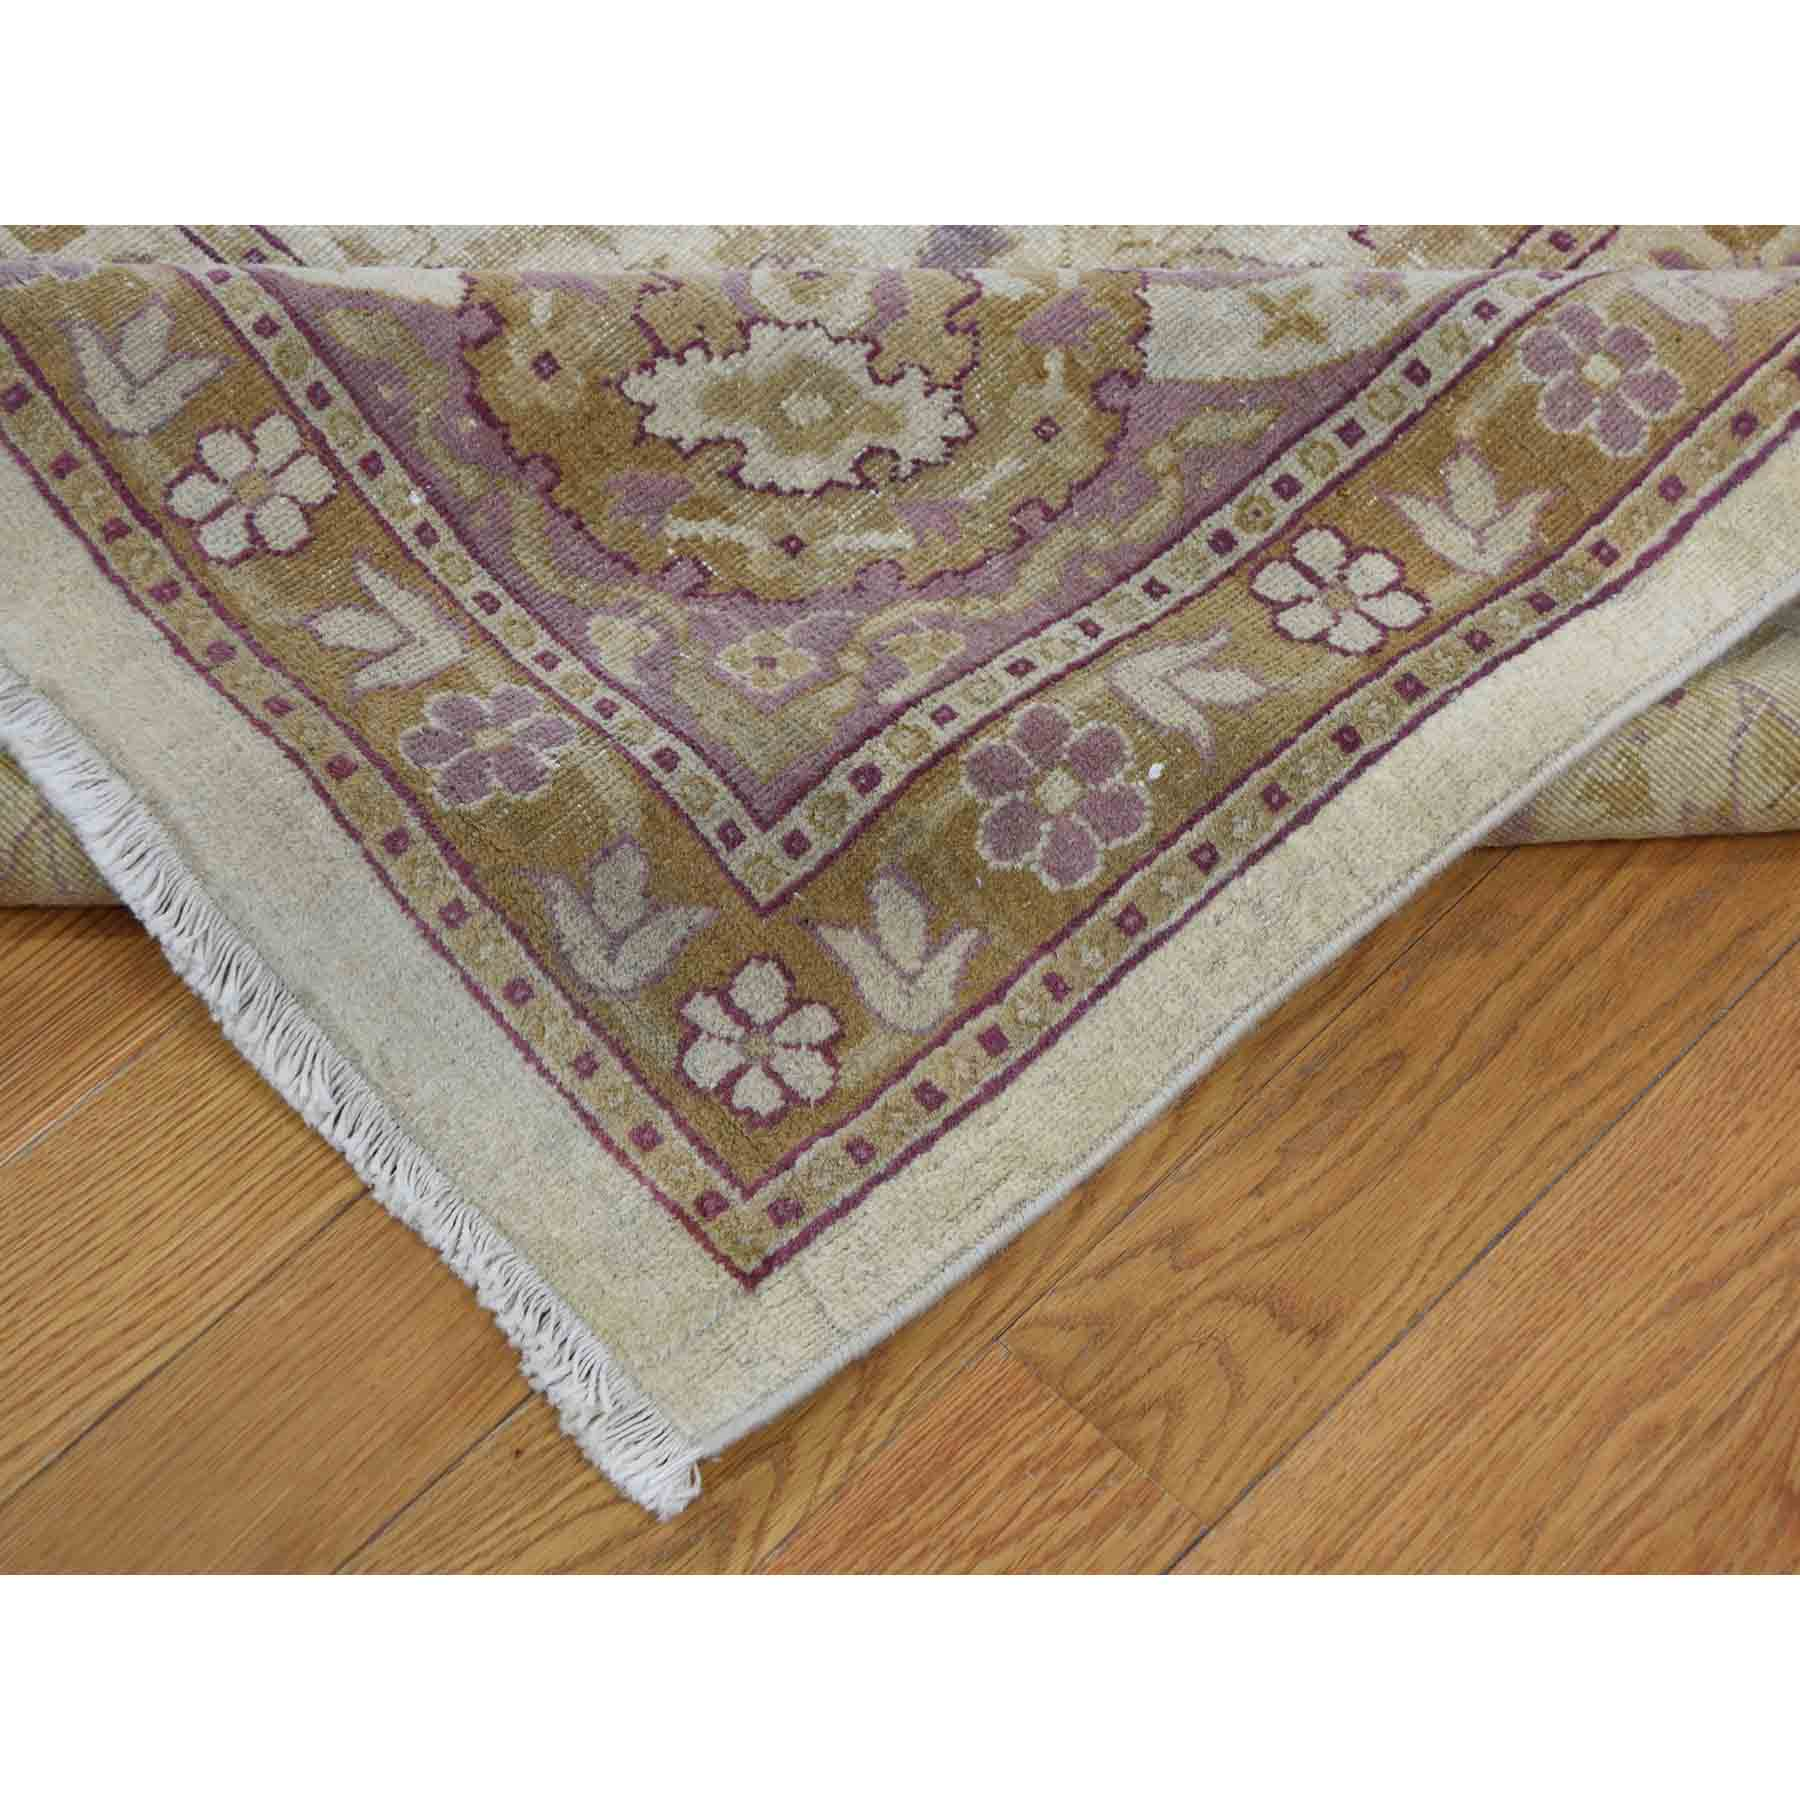 10-7 x16-4  Antique Mughal Amritsar Good Condition Even Wear Hand-Knotted Oriental Oversize Rug